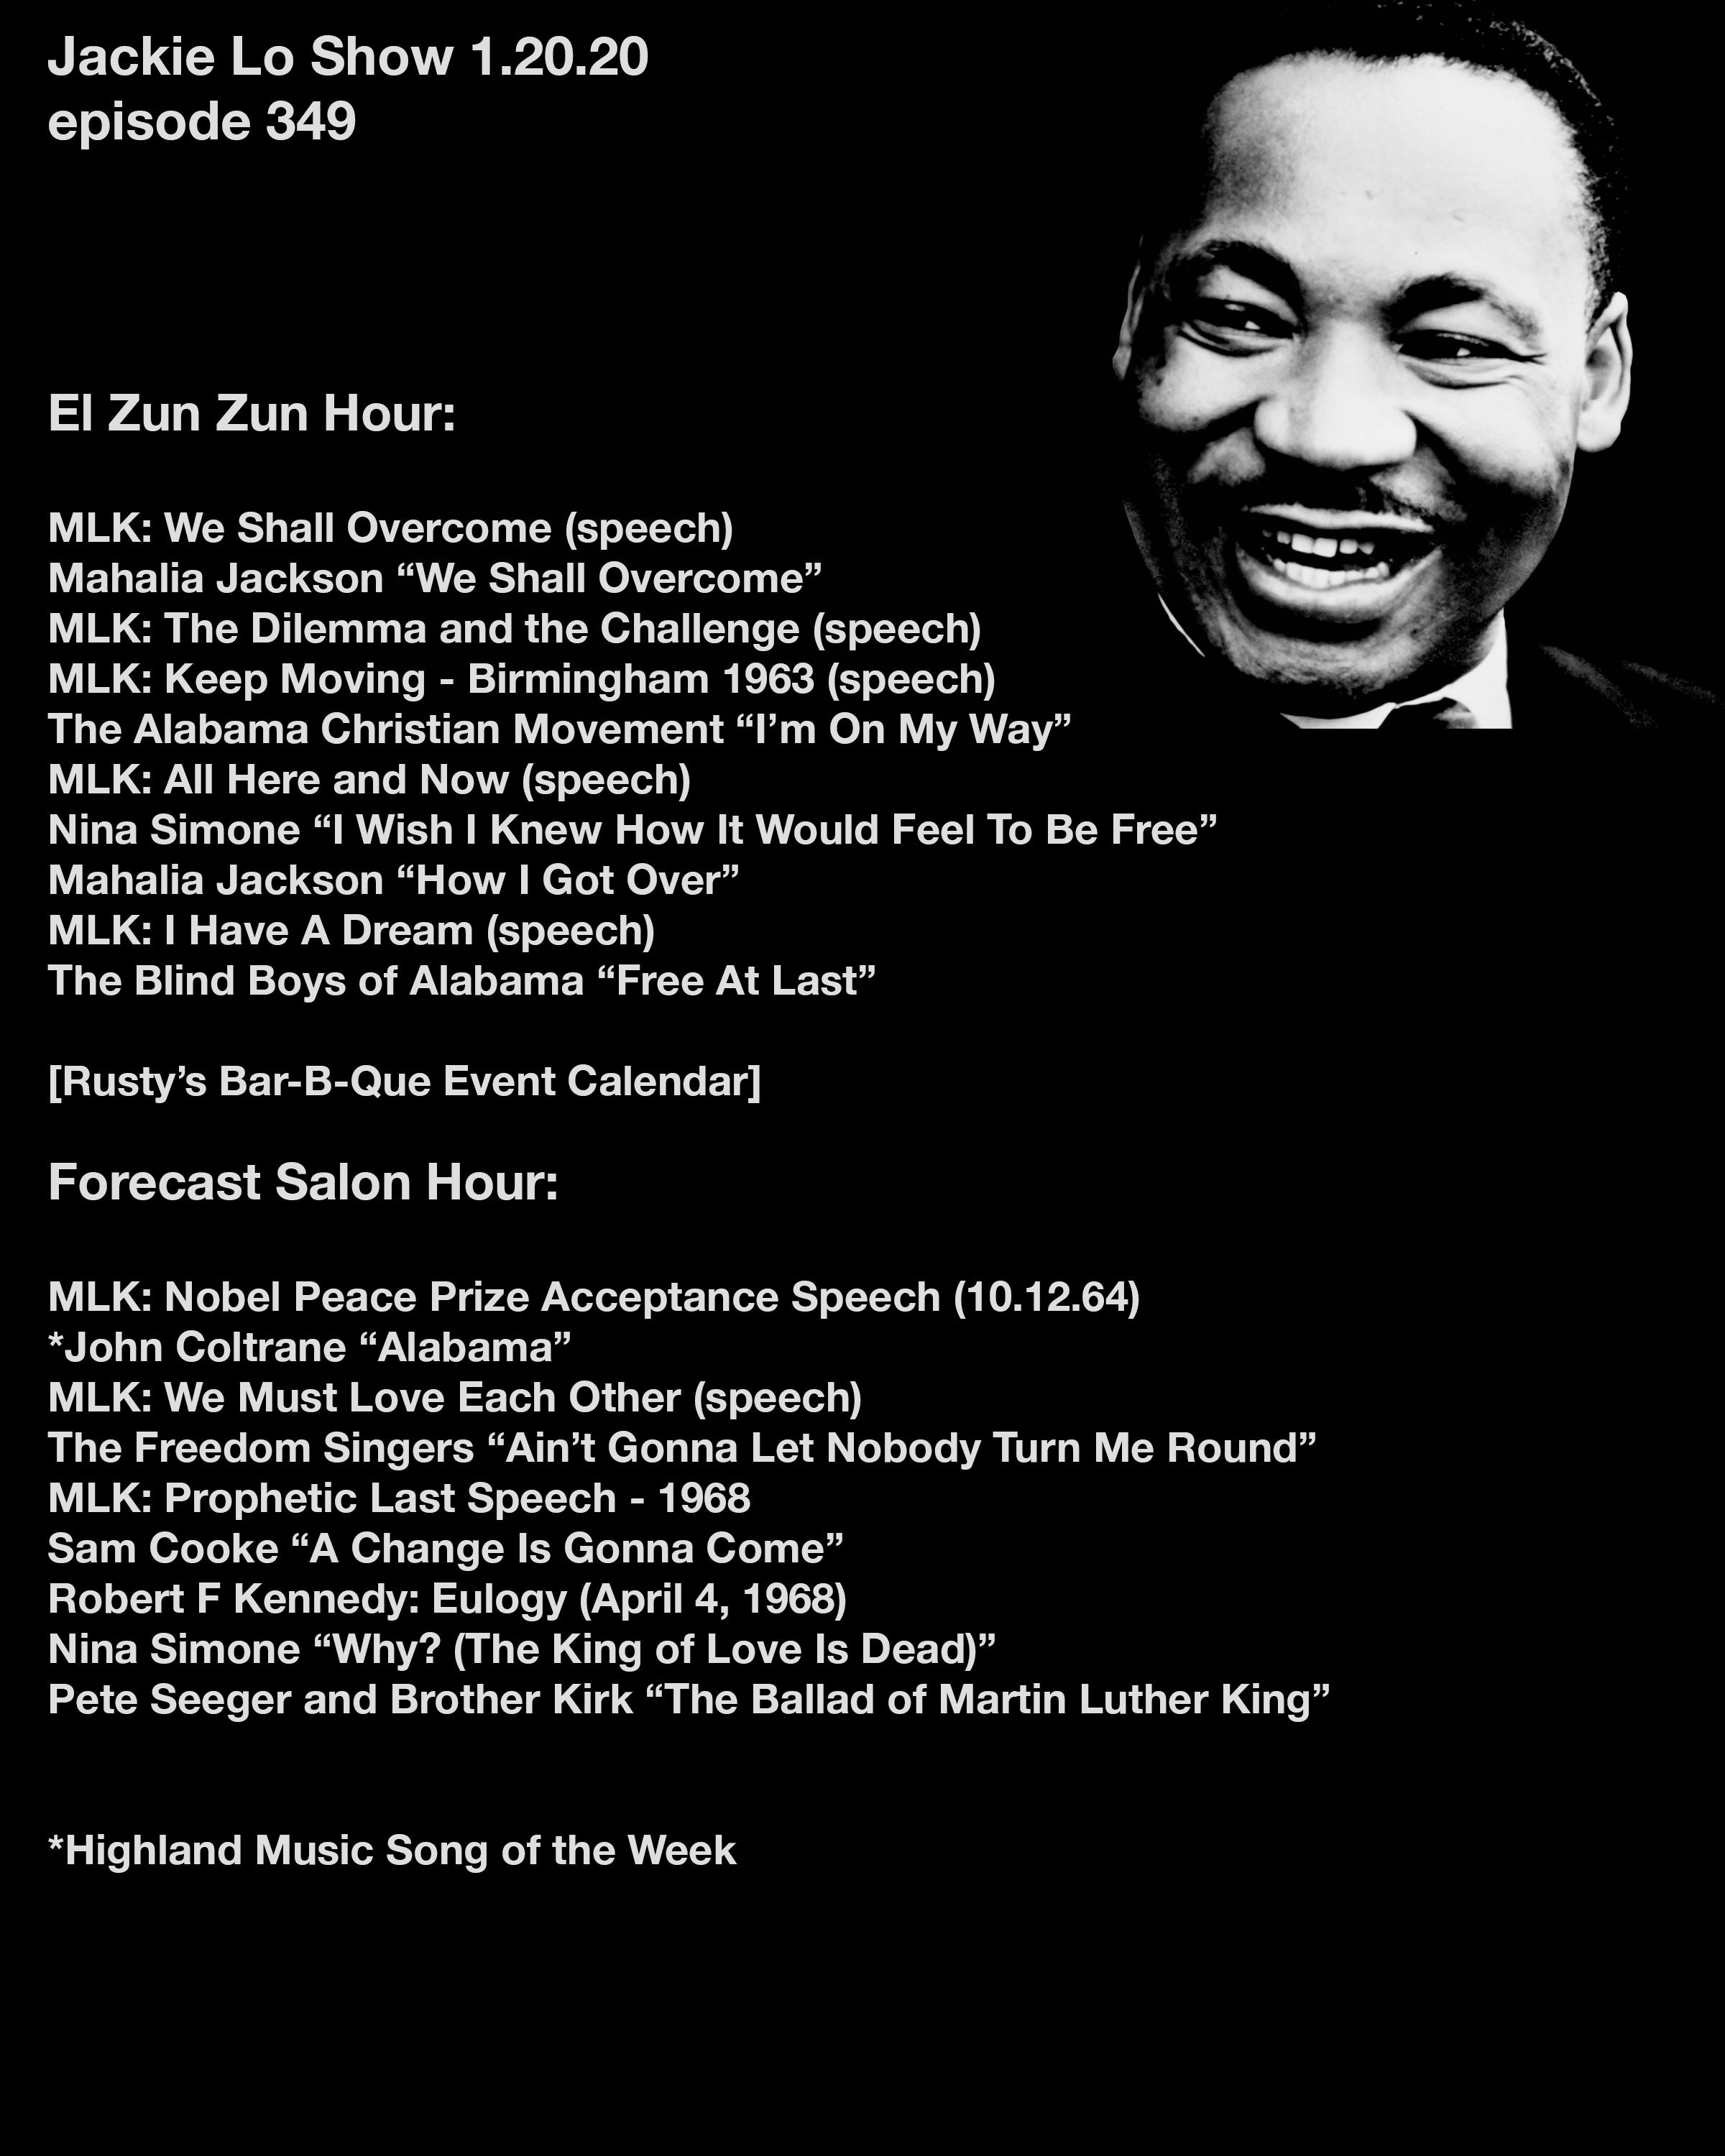 Dr Martin Luther King Jr Show Mlk Playlist Mahalia Jackson Martin Luther King Jr Mlk